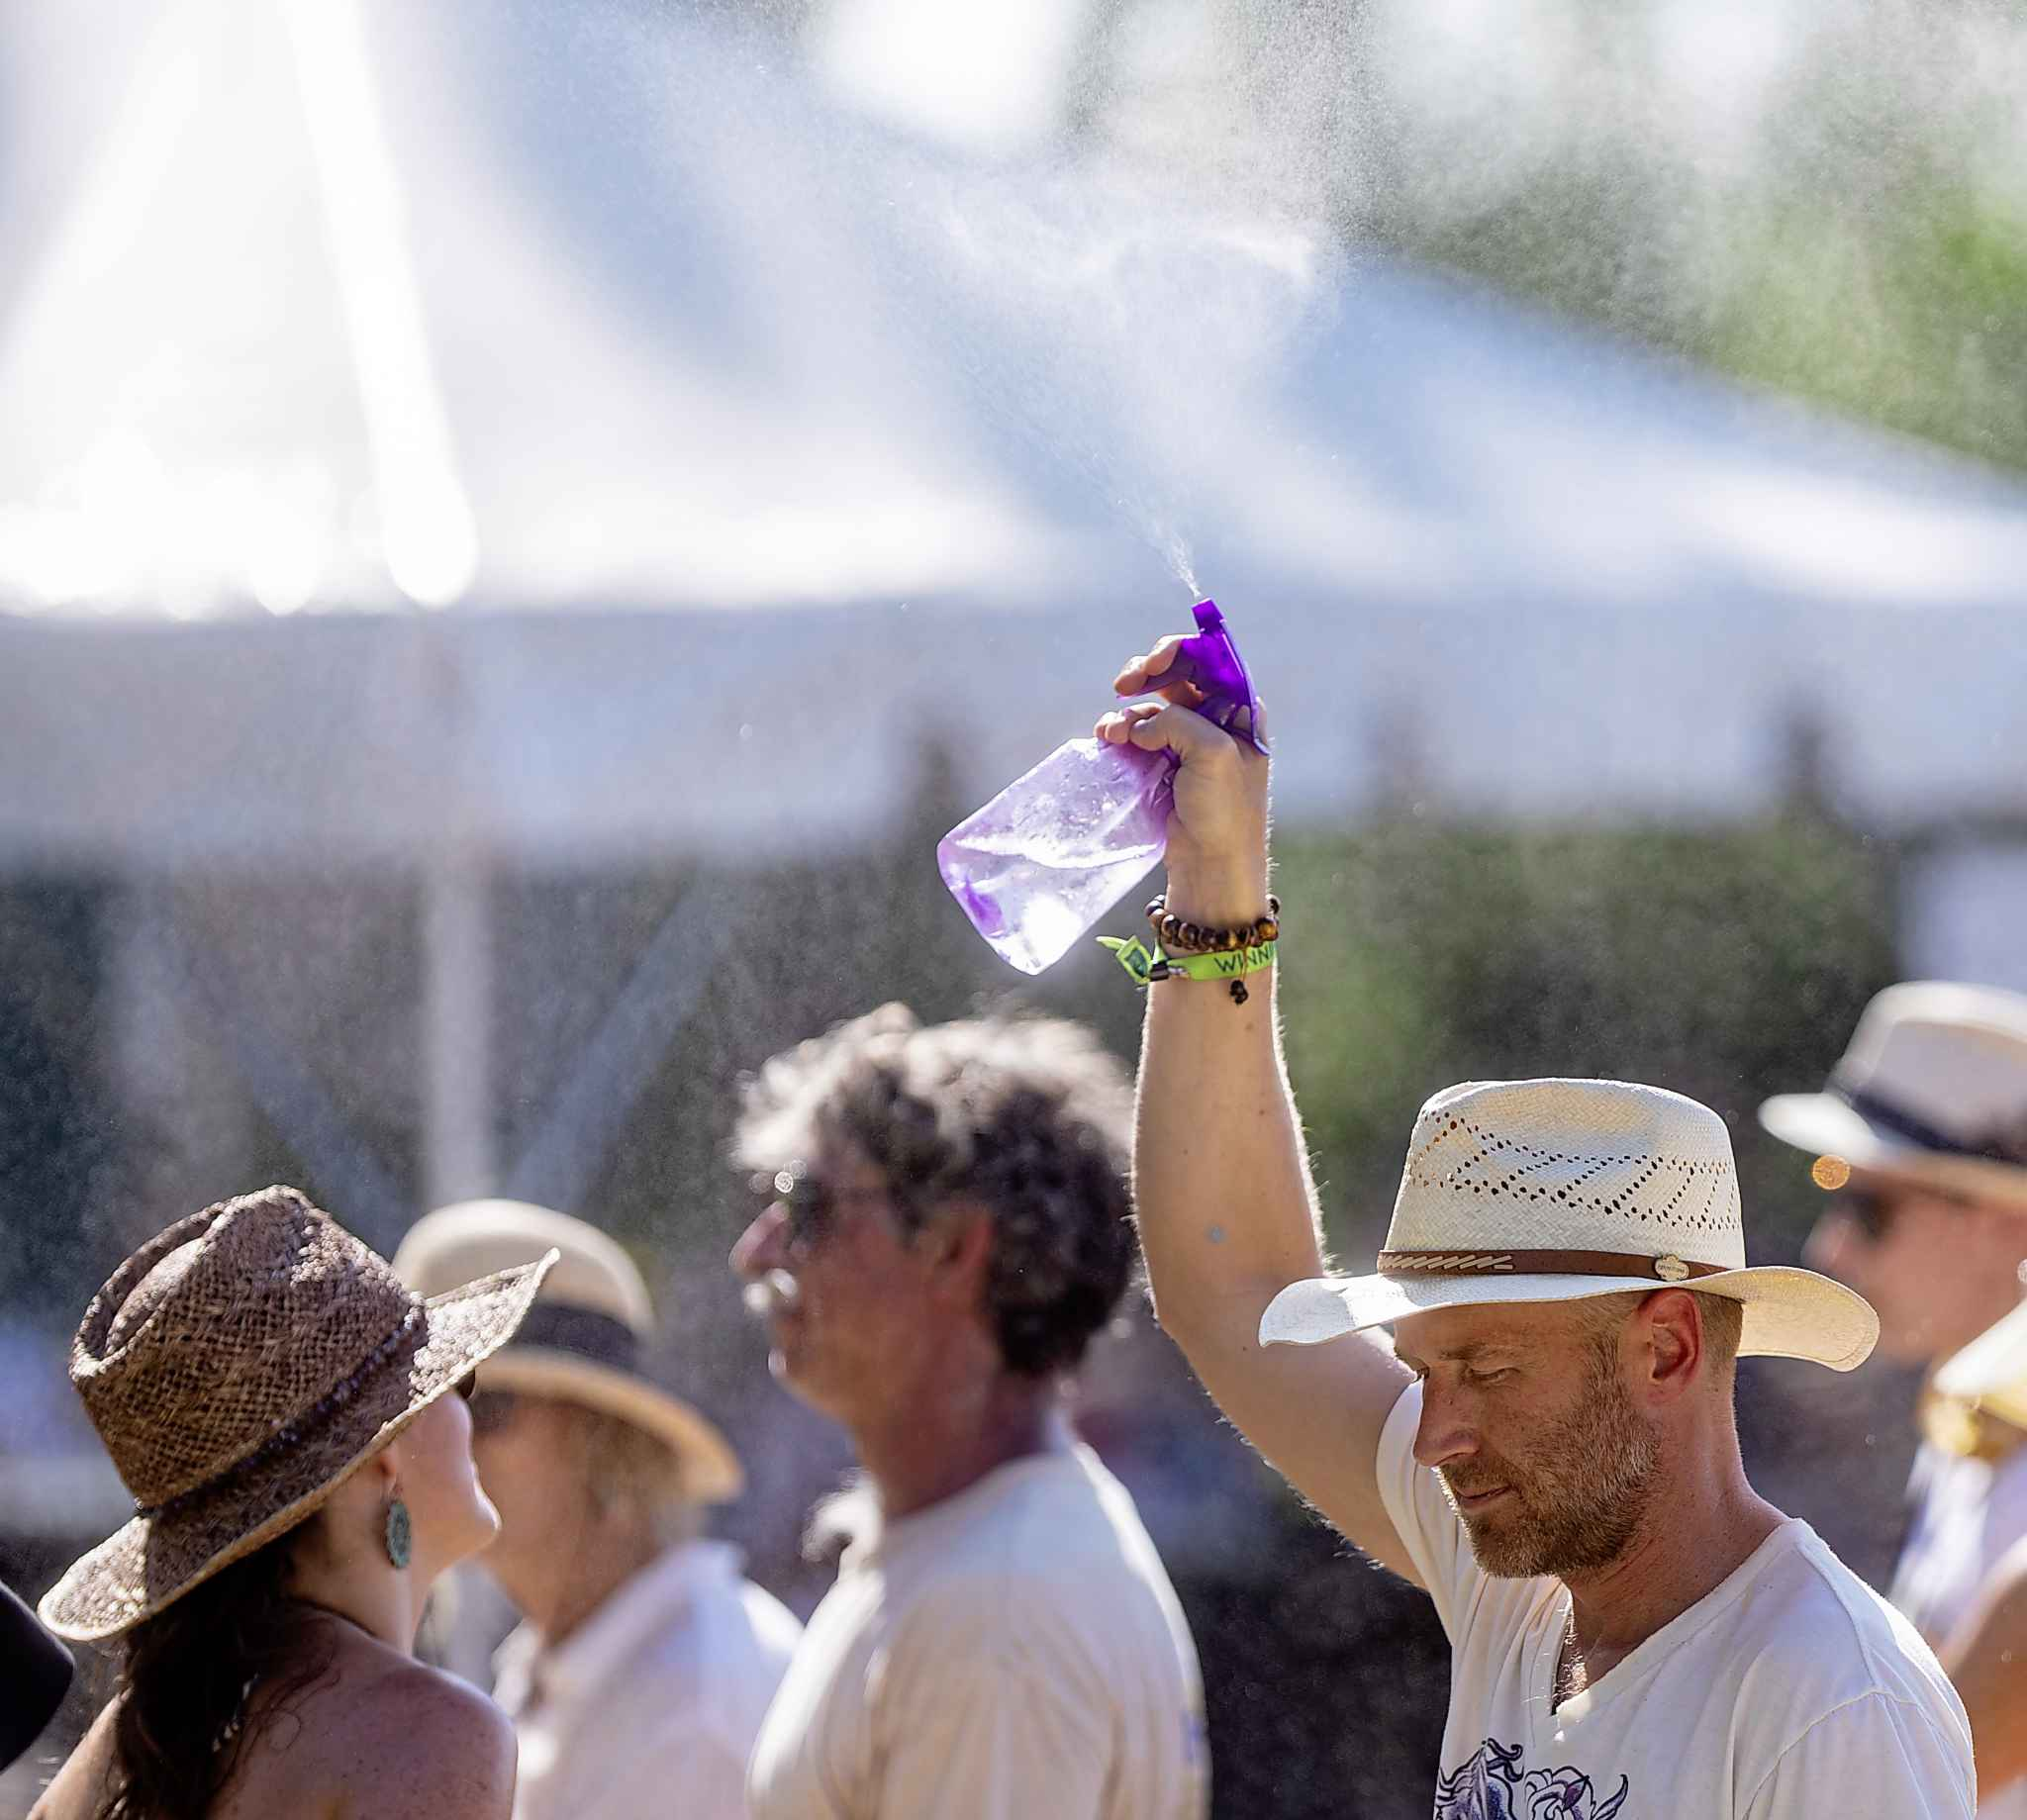 SASHA SEFTER / WINNIPEG FREE PRESS</p><p>David Stanford mists the air to cool down during the festival. Free Press staffers agreed more shade was at the daytime stage were needed. Even a misting tent would suffice.</p>